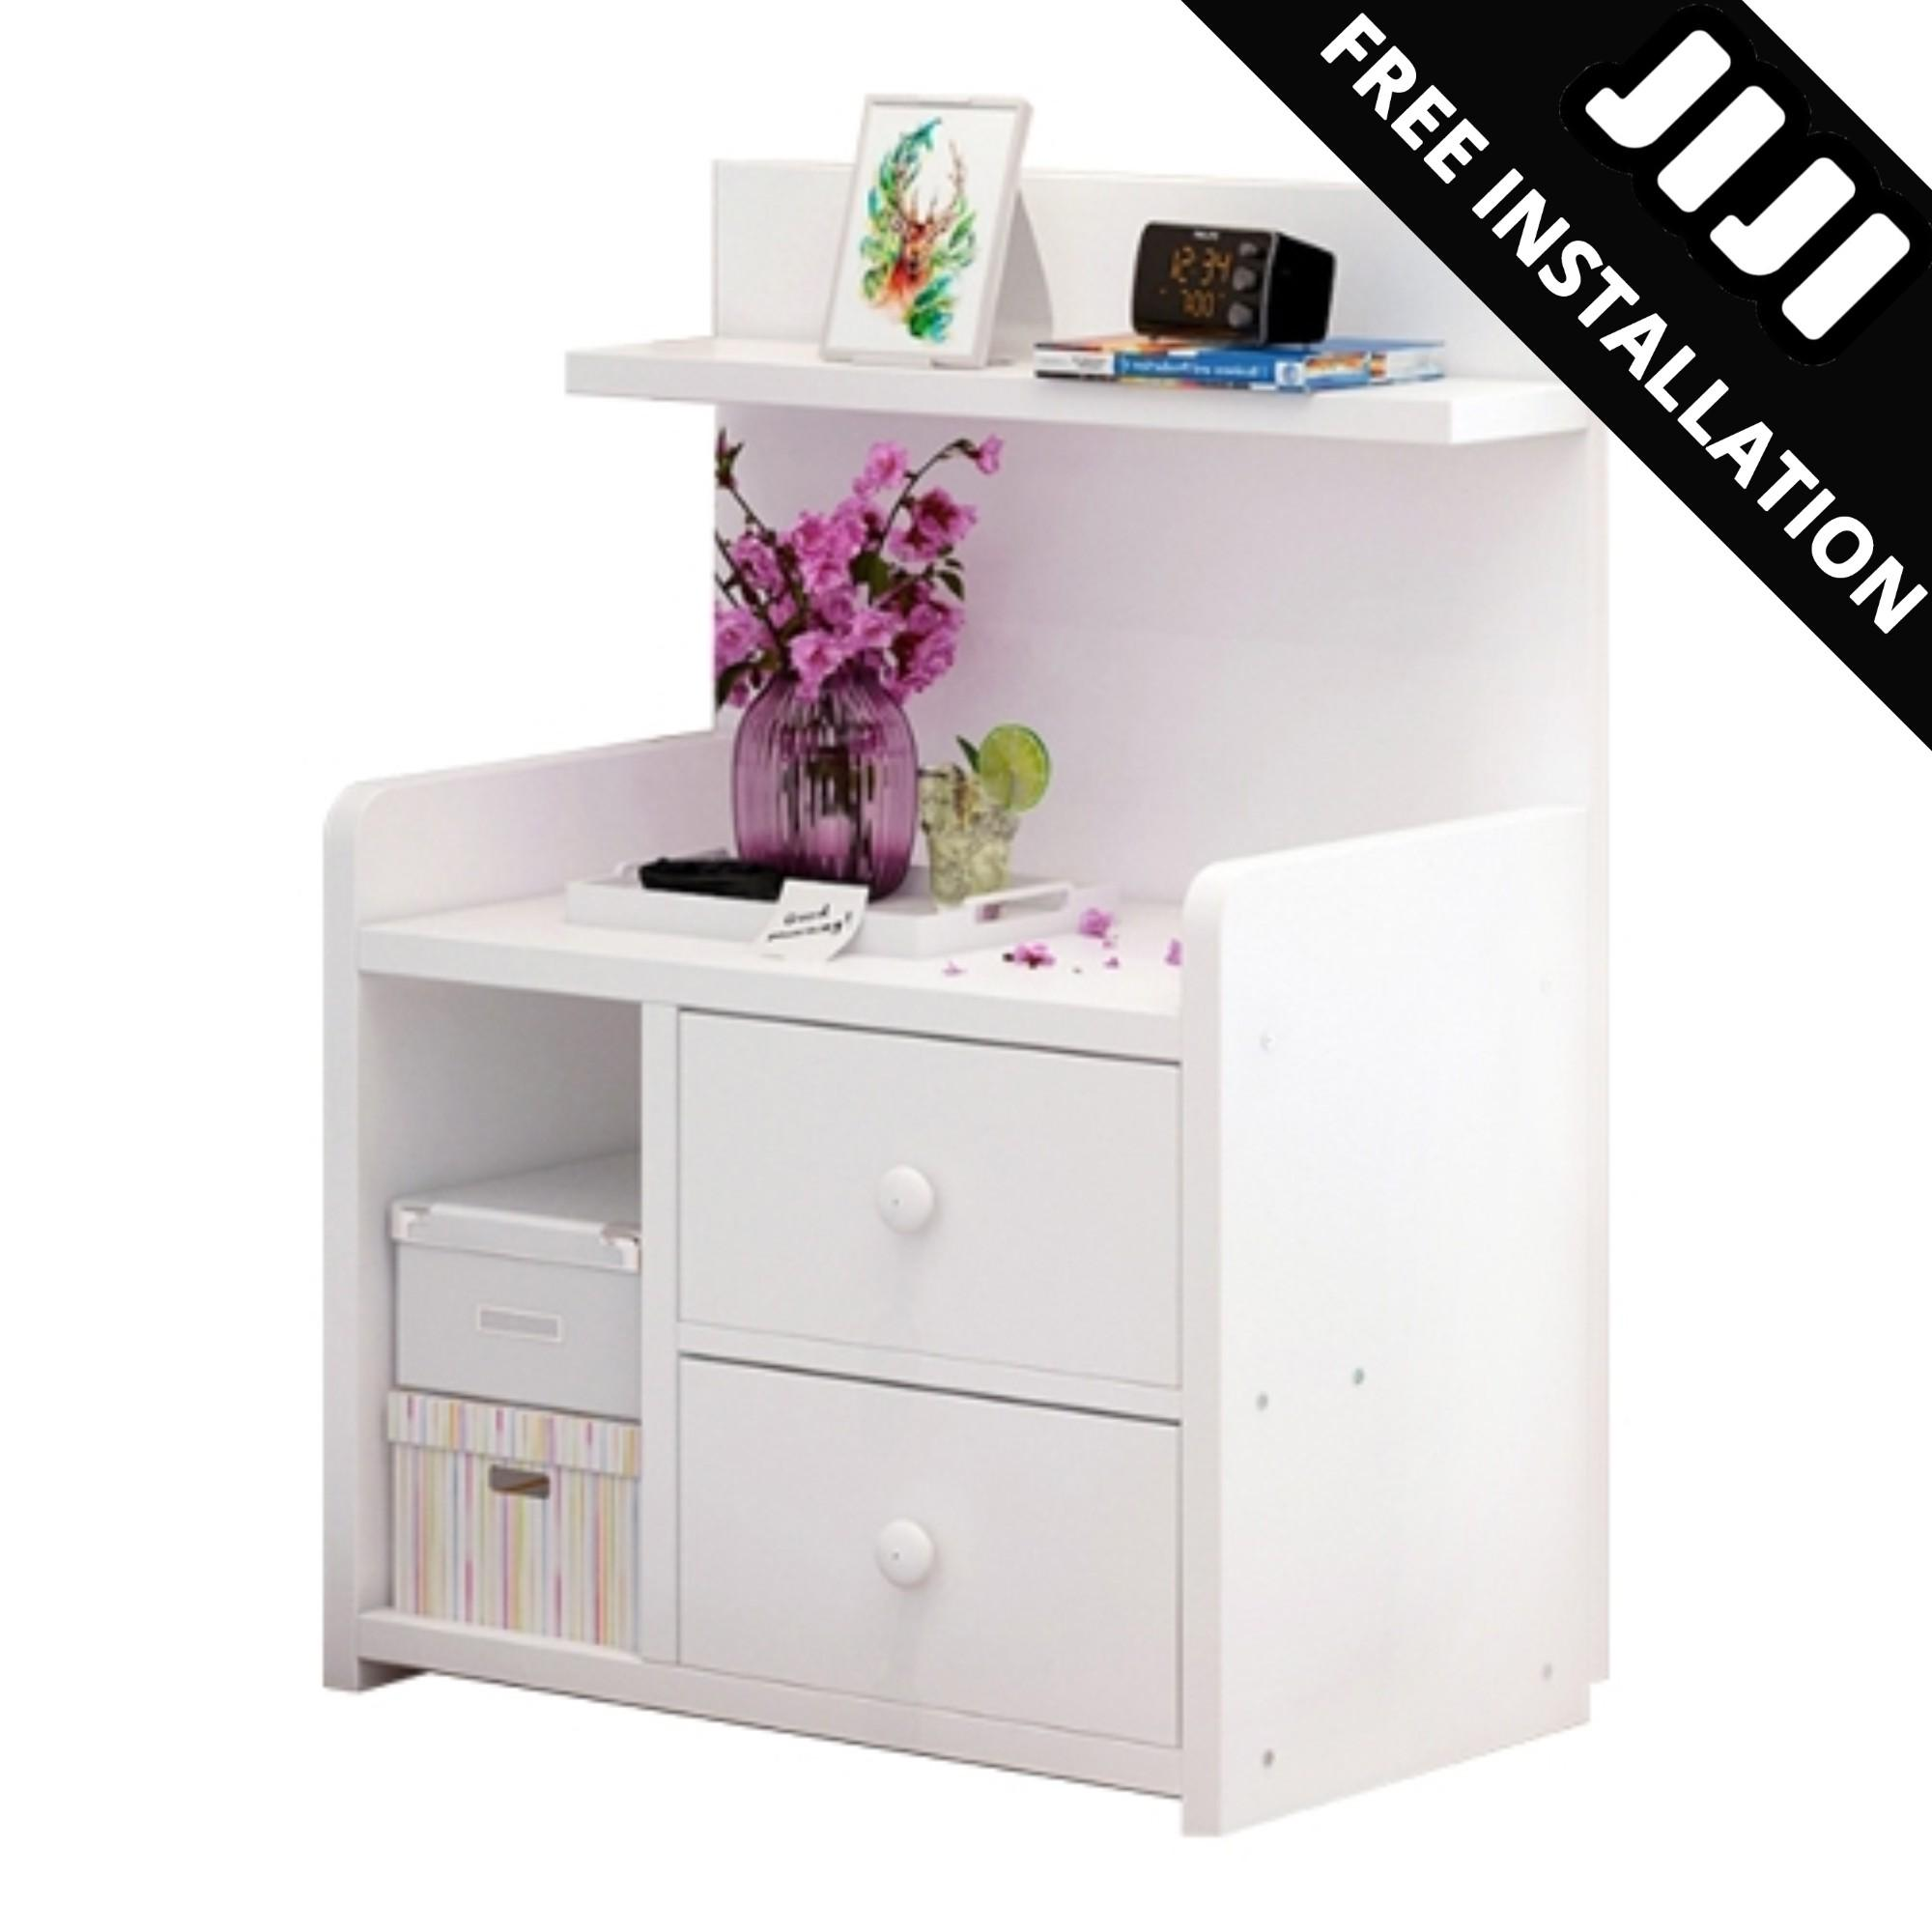 JIJI New Kayson Dual Bedside Table (Free Installation) - Bedroom / Furniture / Bedside Tables (SG)